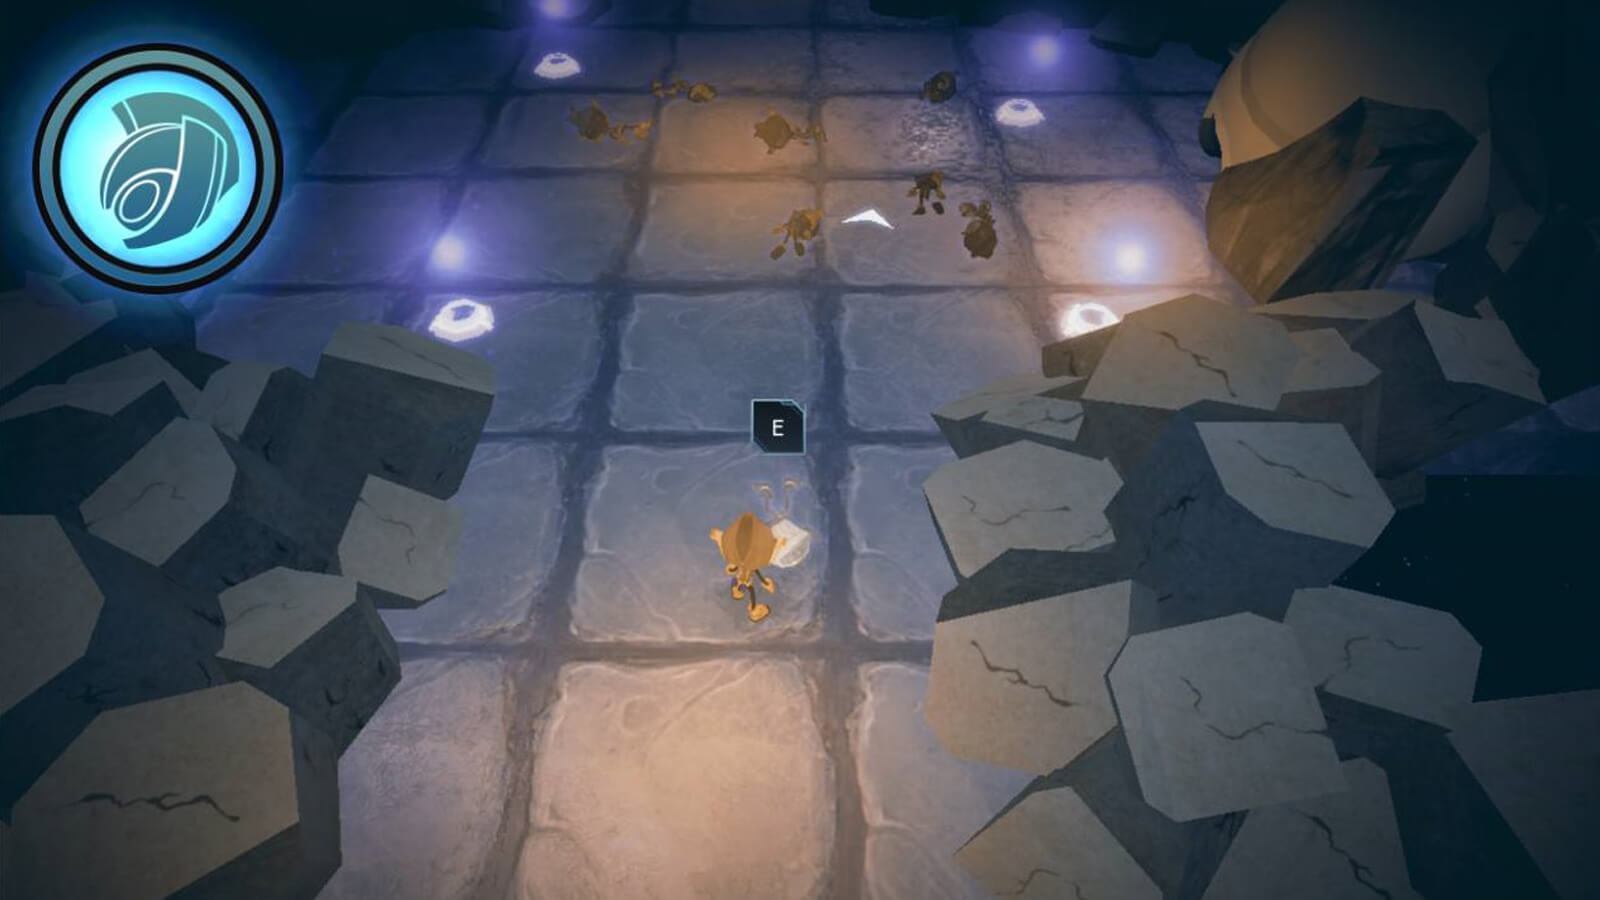 The player's character stands between two piles of broken stone rubble with several defeated enemies seen ahead